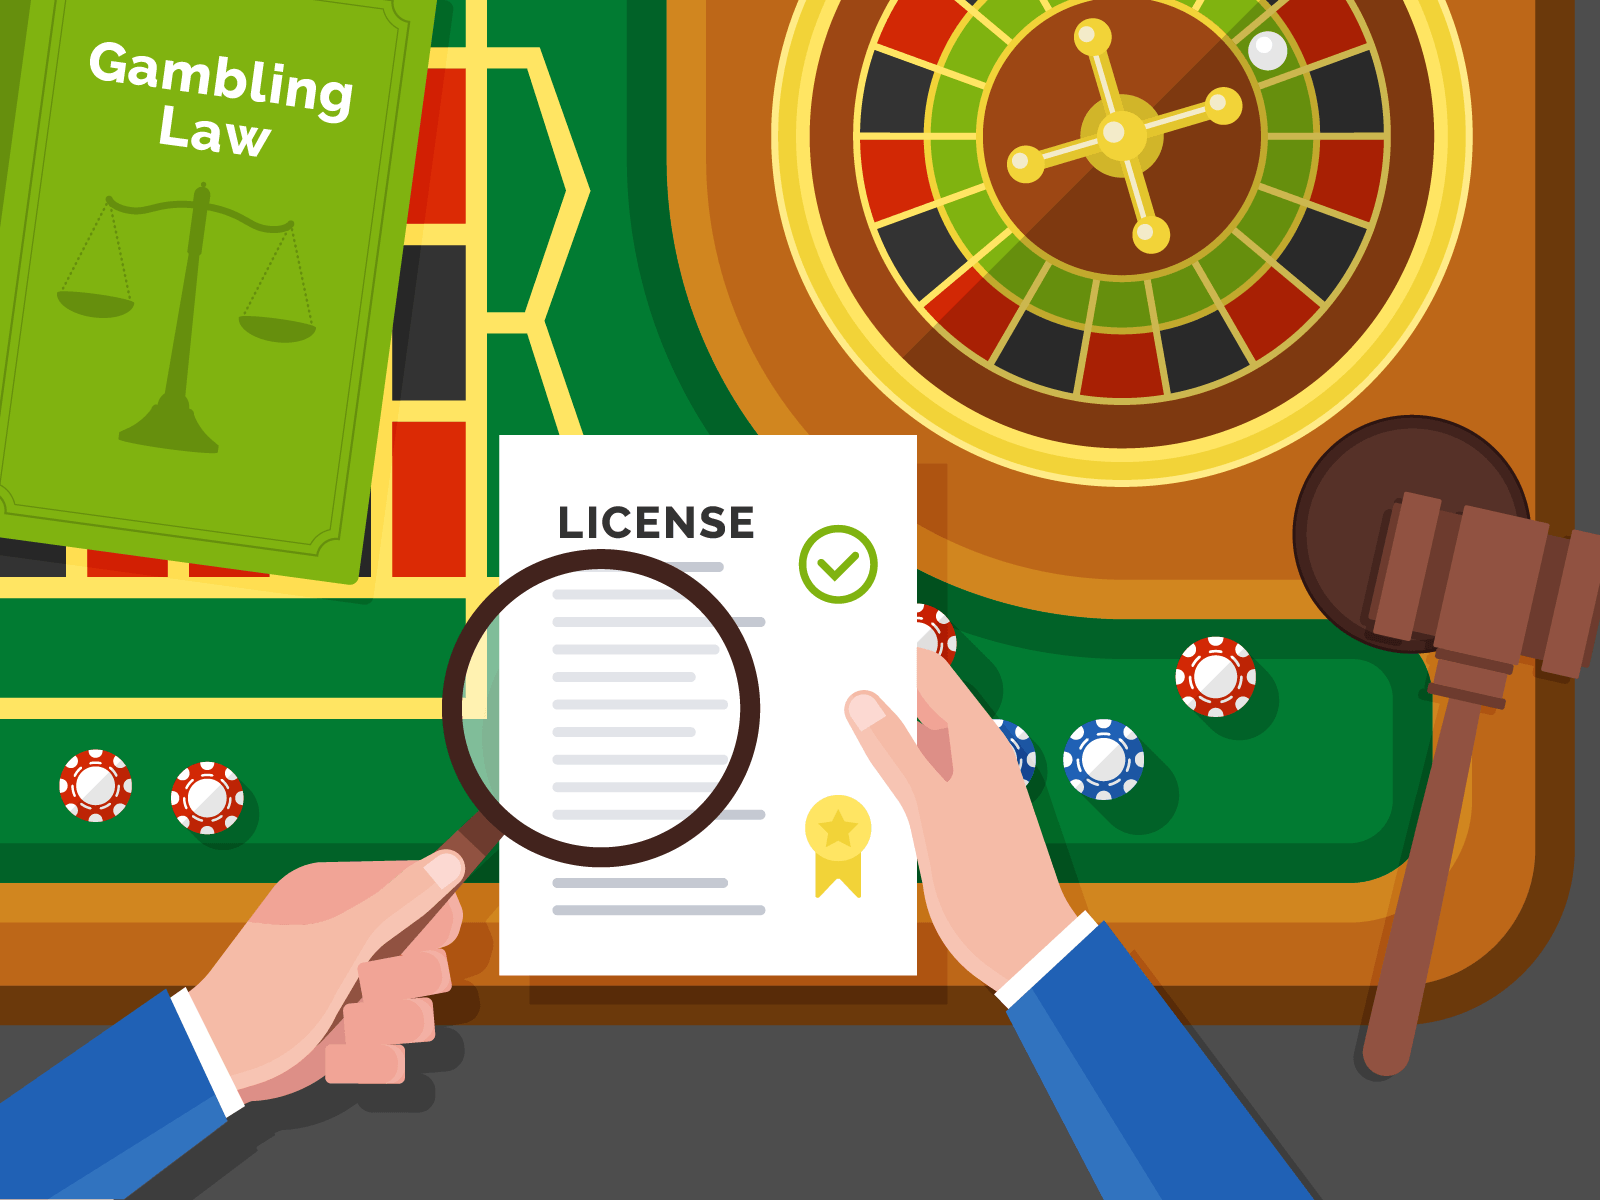 gambling license and roulette wheel